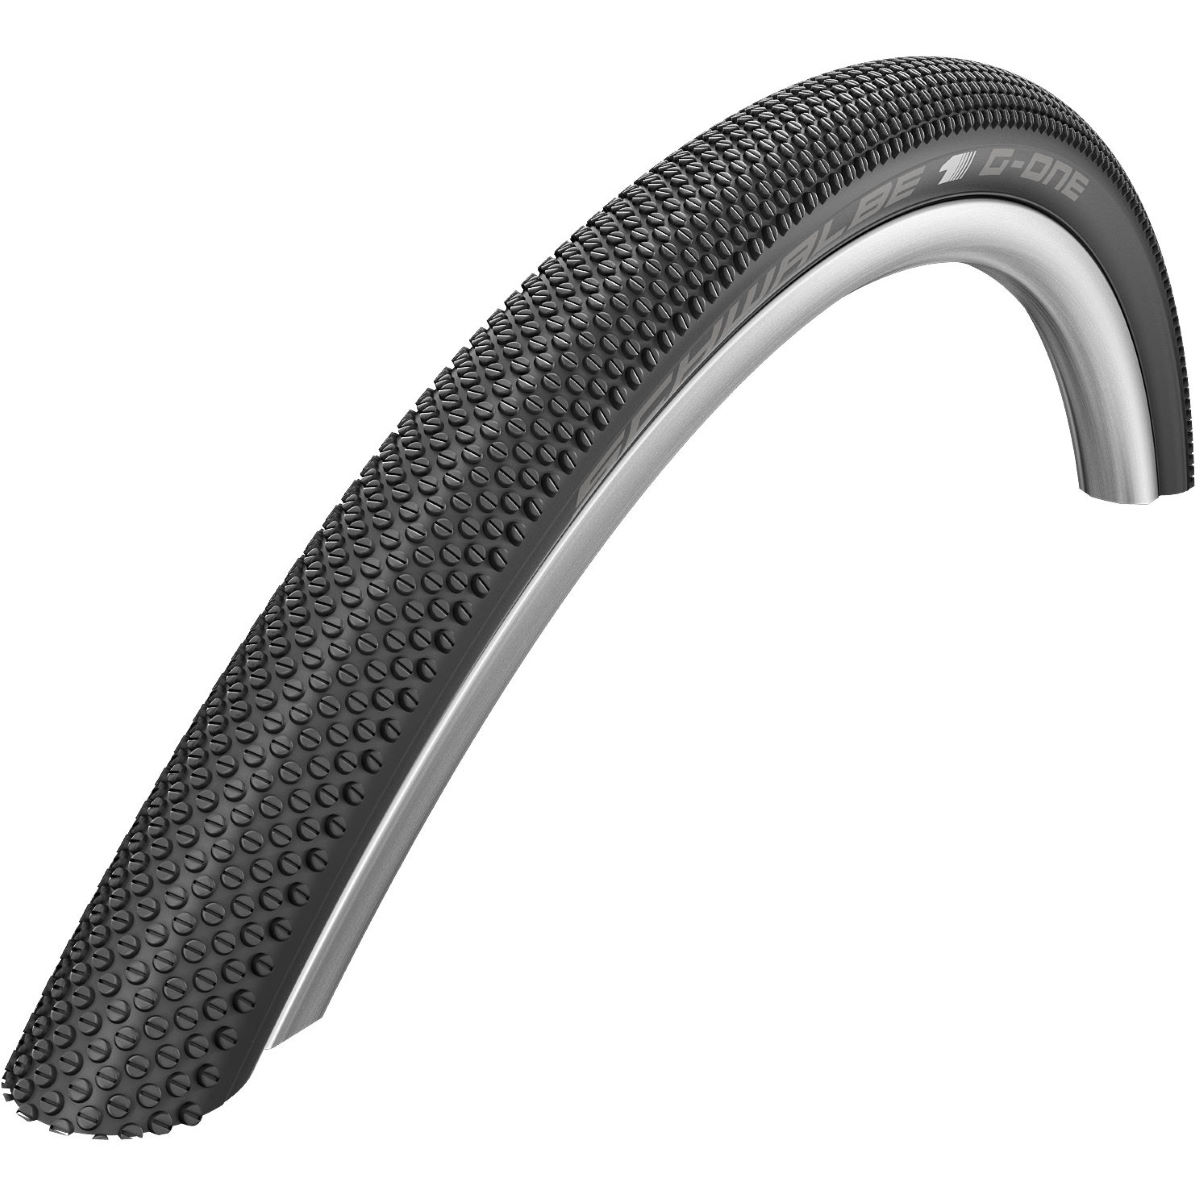 Schwalbe G-One Allround MicroSkin TL-Easy Folding Road Tyre - 35C 700c Noir Pneus VTT Slick